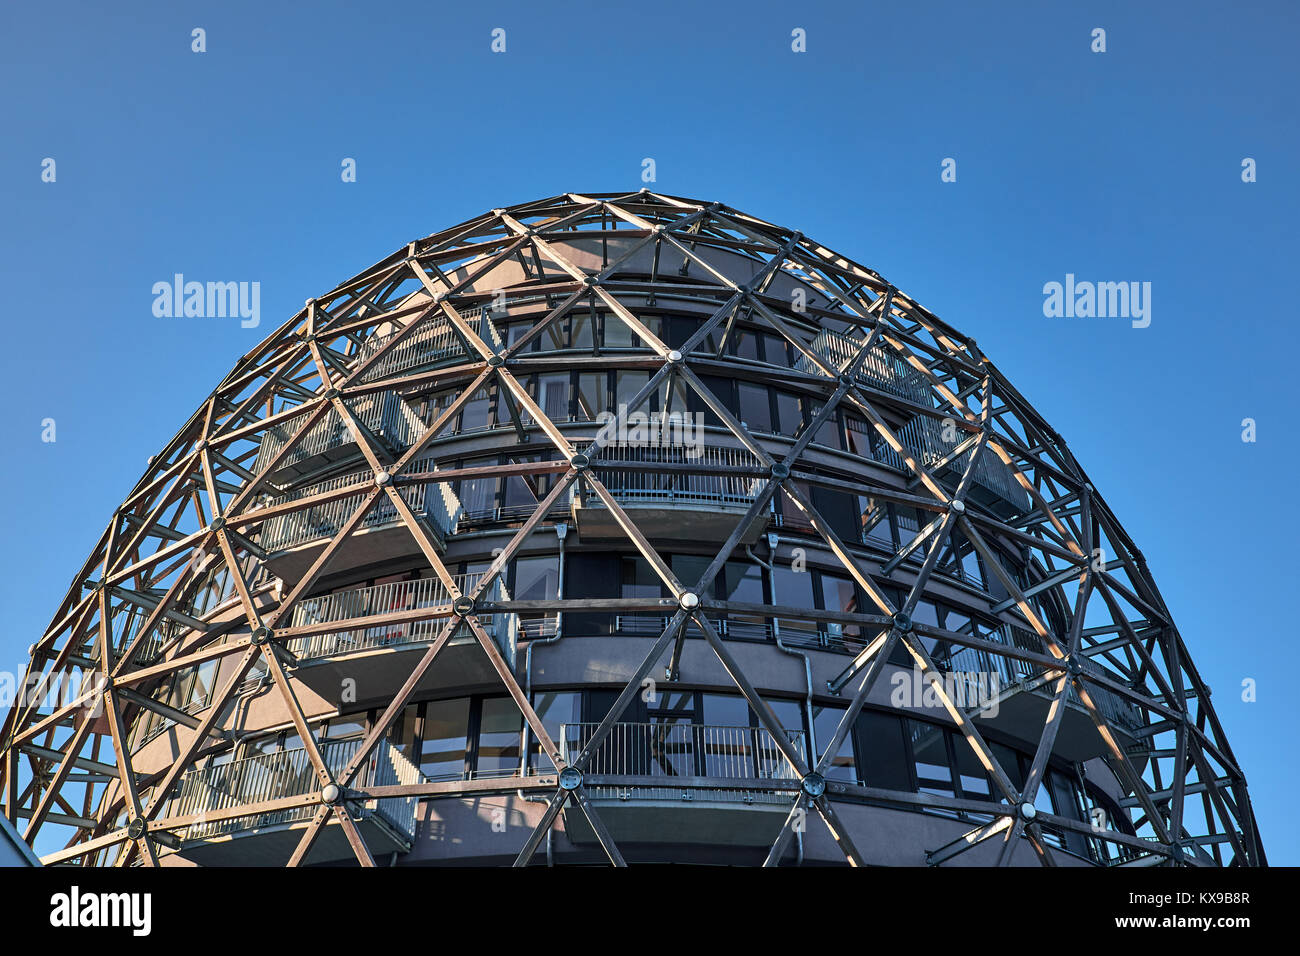 WINTERBERG, GERMANY - FEBRUARY 14, 2017: The top of a architectural dome shaped building made of framework in wood - Stock Image